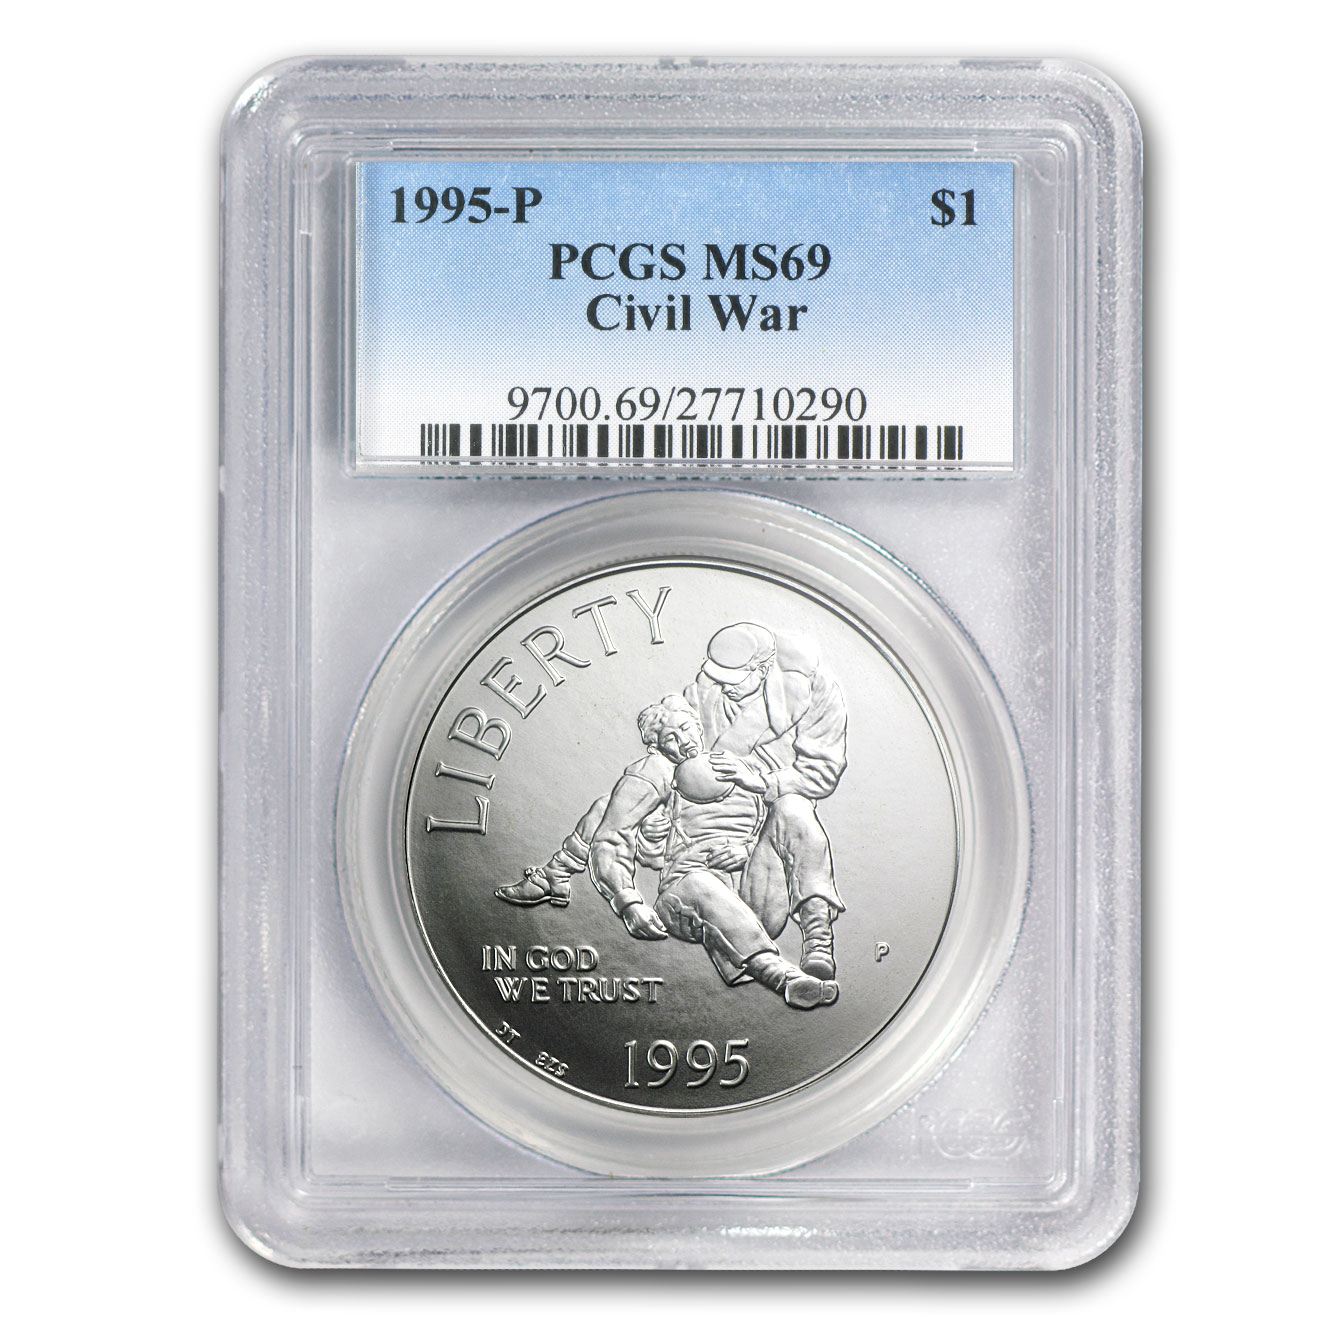 1995-P Civil War $1 Silver Commemorative MS-69 PCGS